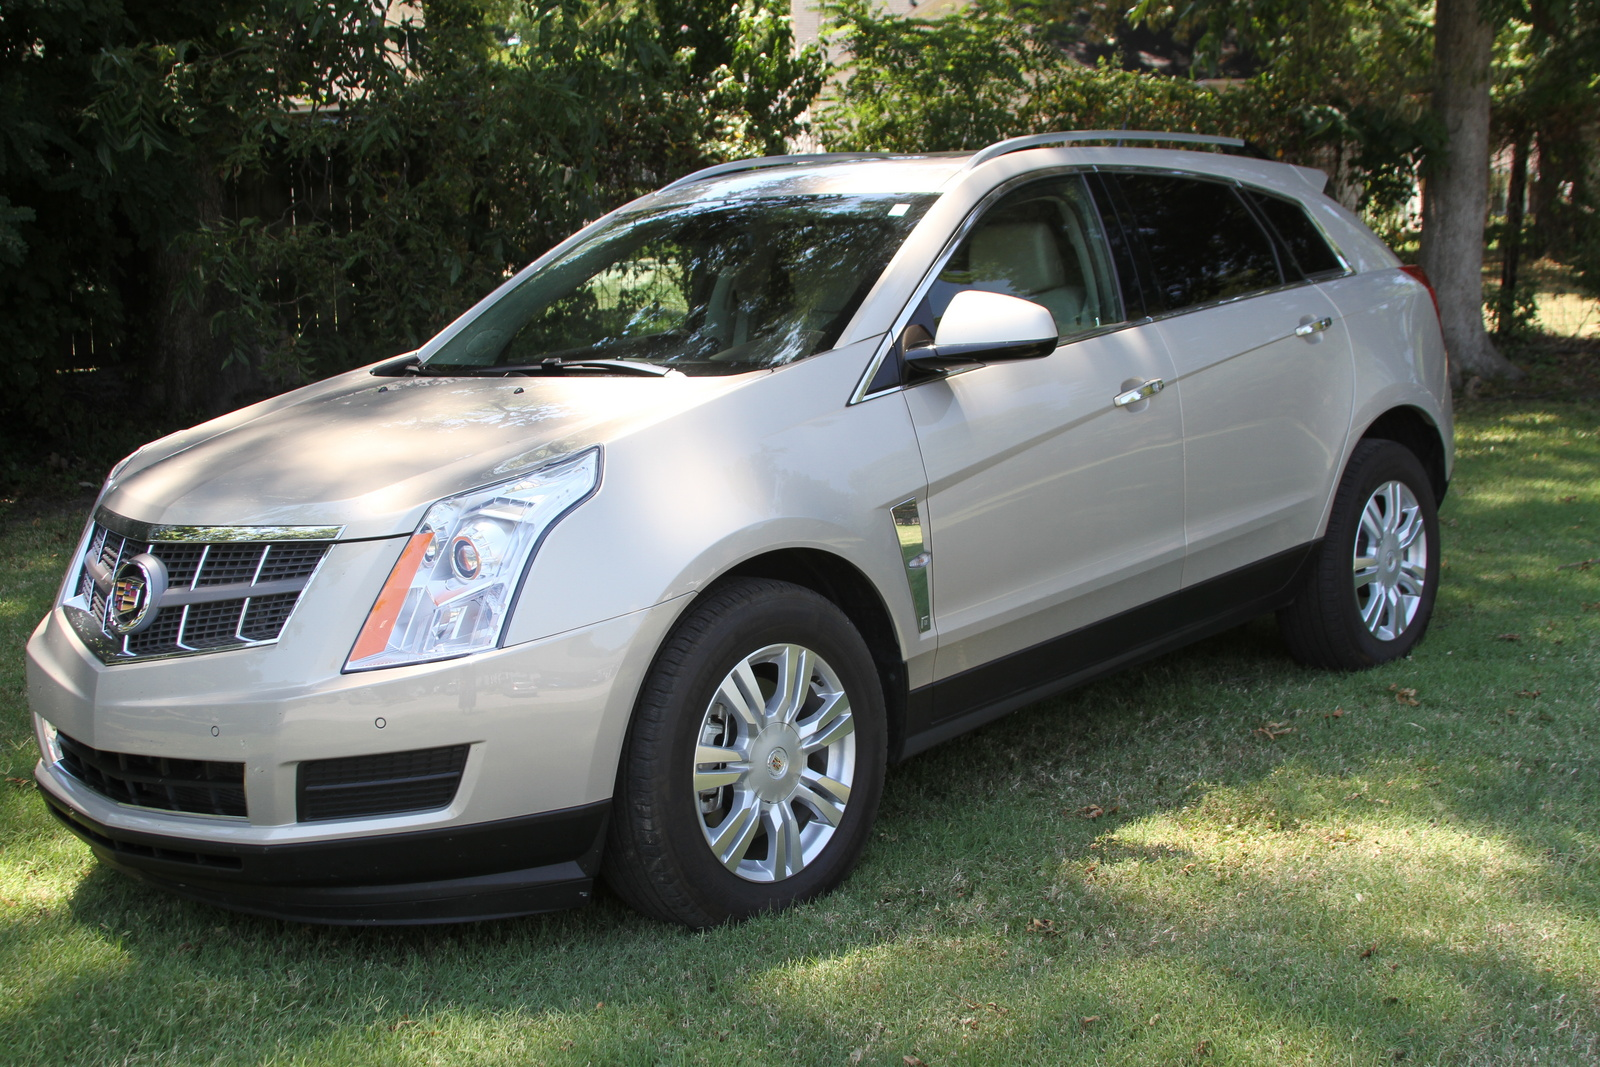 2011 cadillac srx pictures cargurus. Black Bedroom Furniture Sets. Home Design Ideas